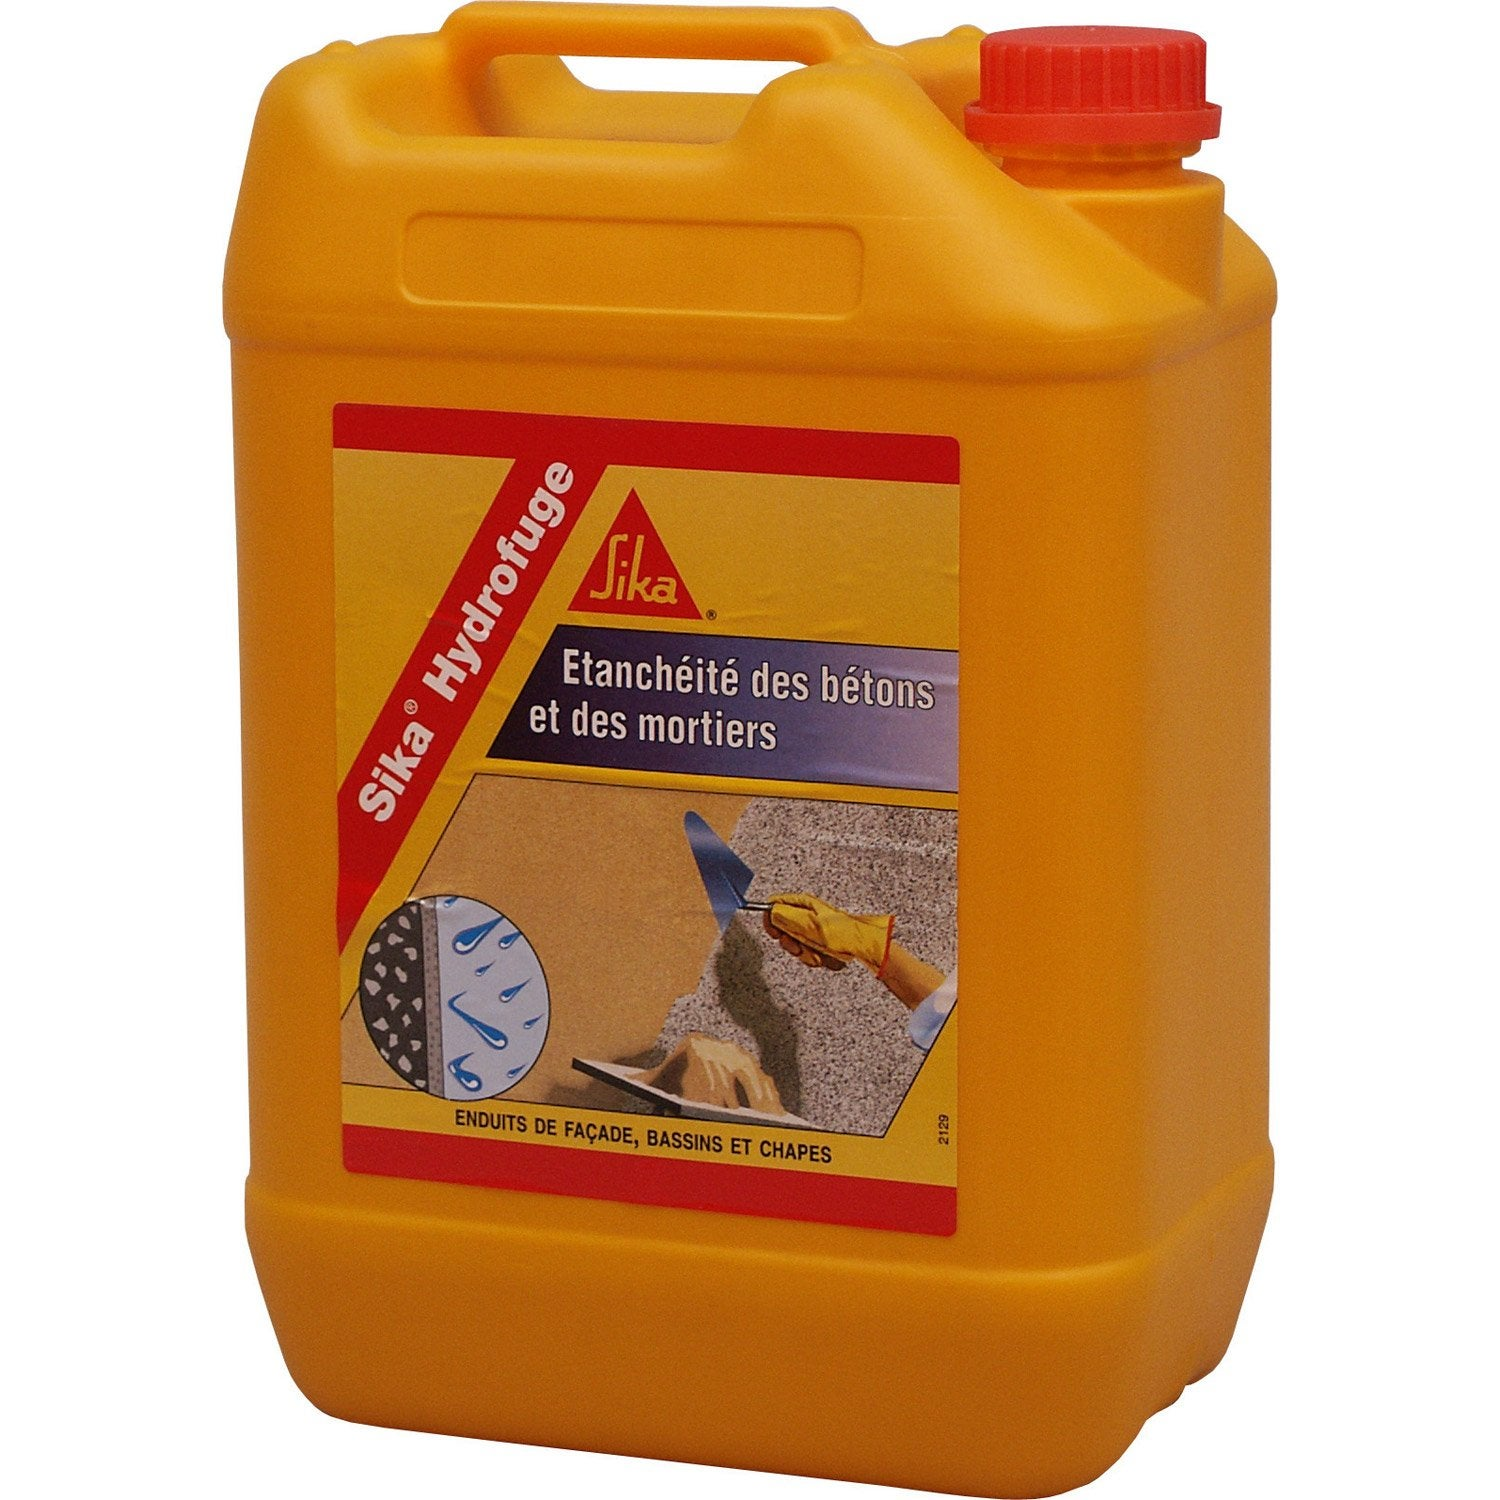 Best Hydrofuge Pour Mortier Sika L Blanc With Dosage Beton Terrasse With Dosage  Beton Terrasse